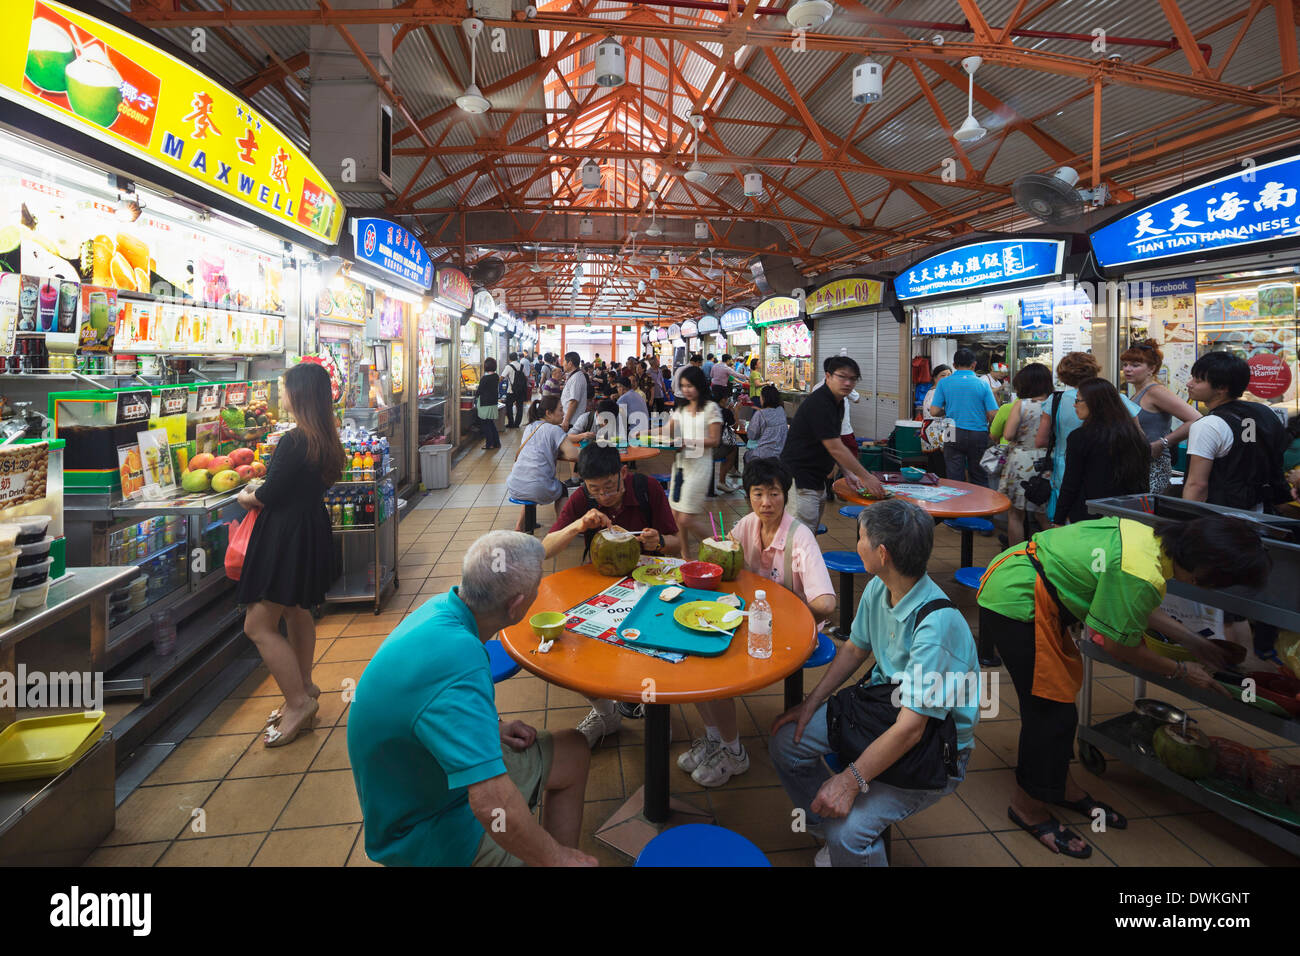 Hawker food court, Little India, Singapore, Southeast Asia, Asia - Stock Image